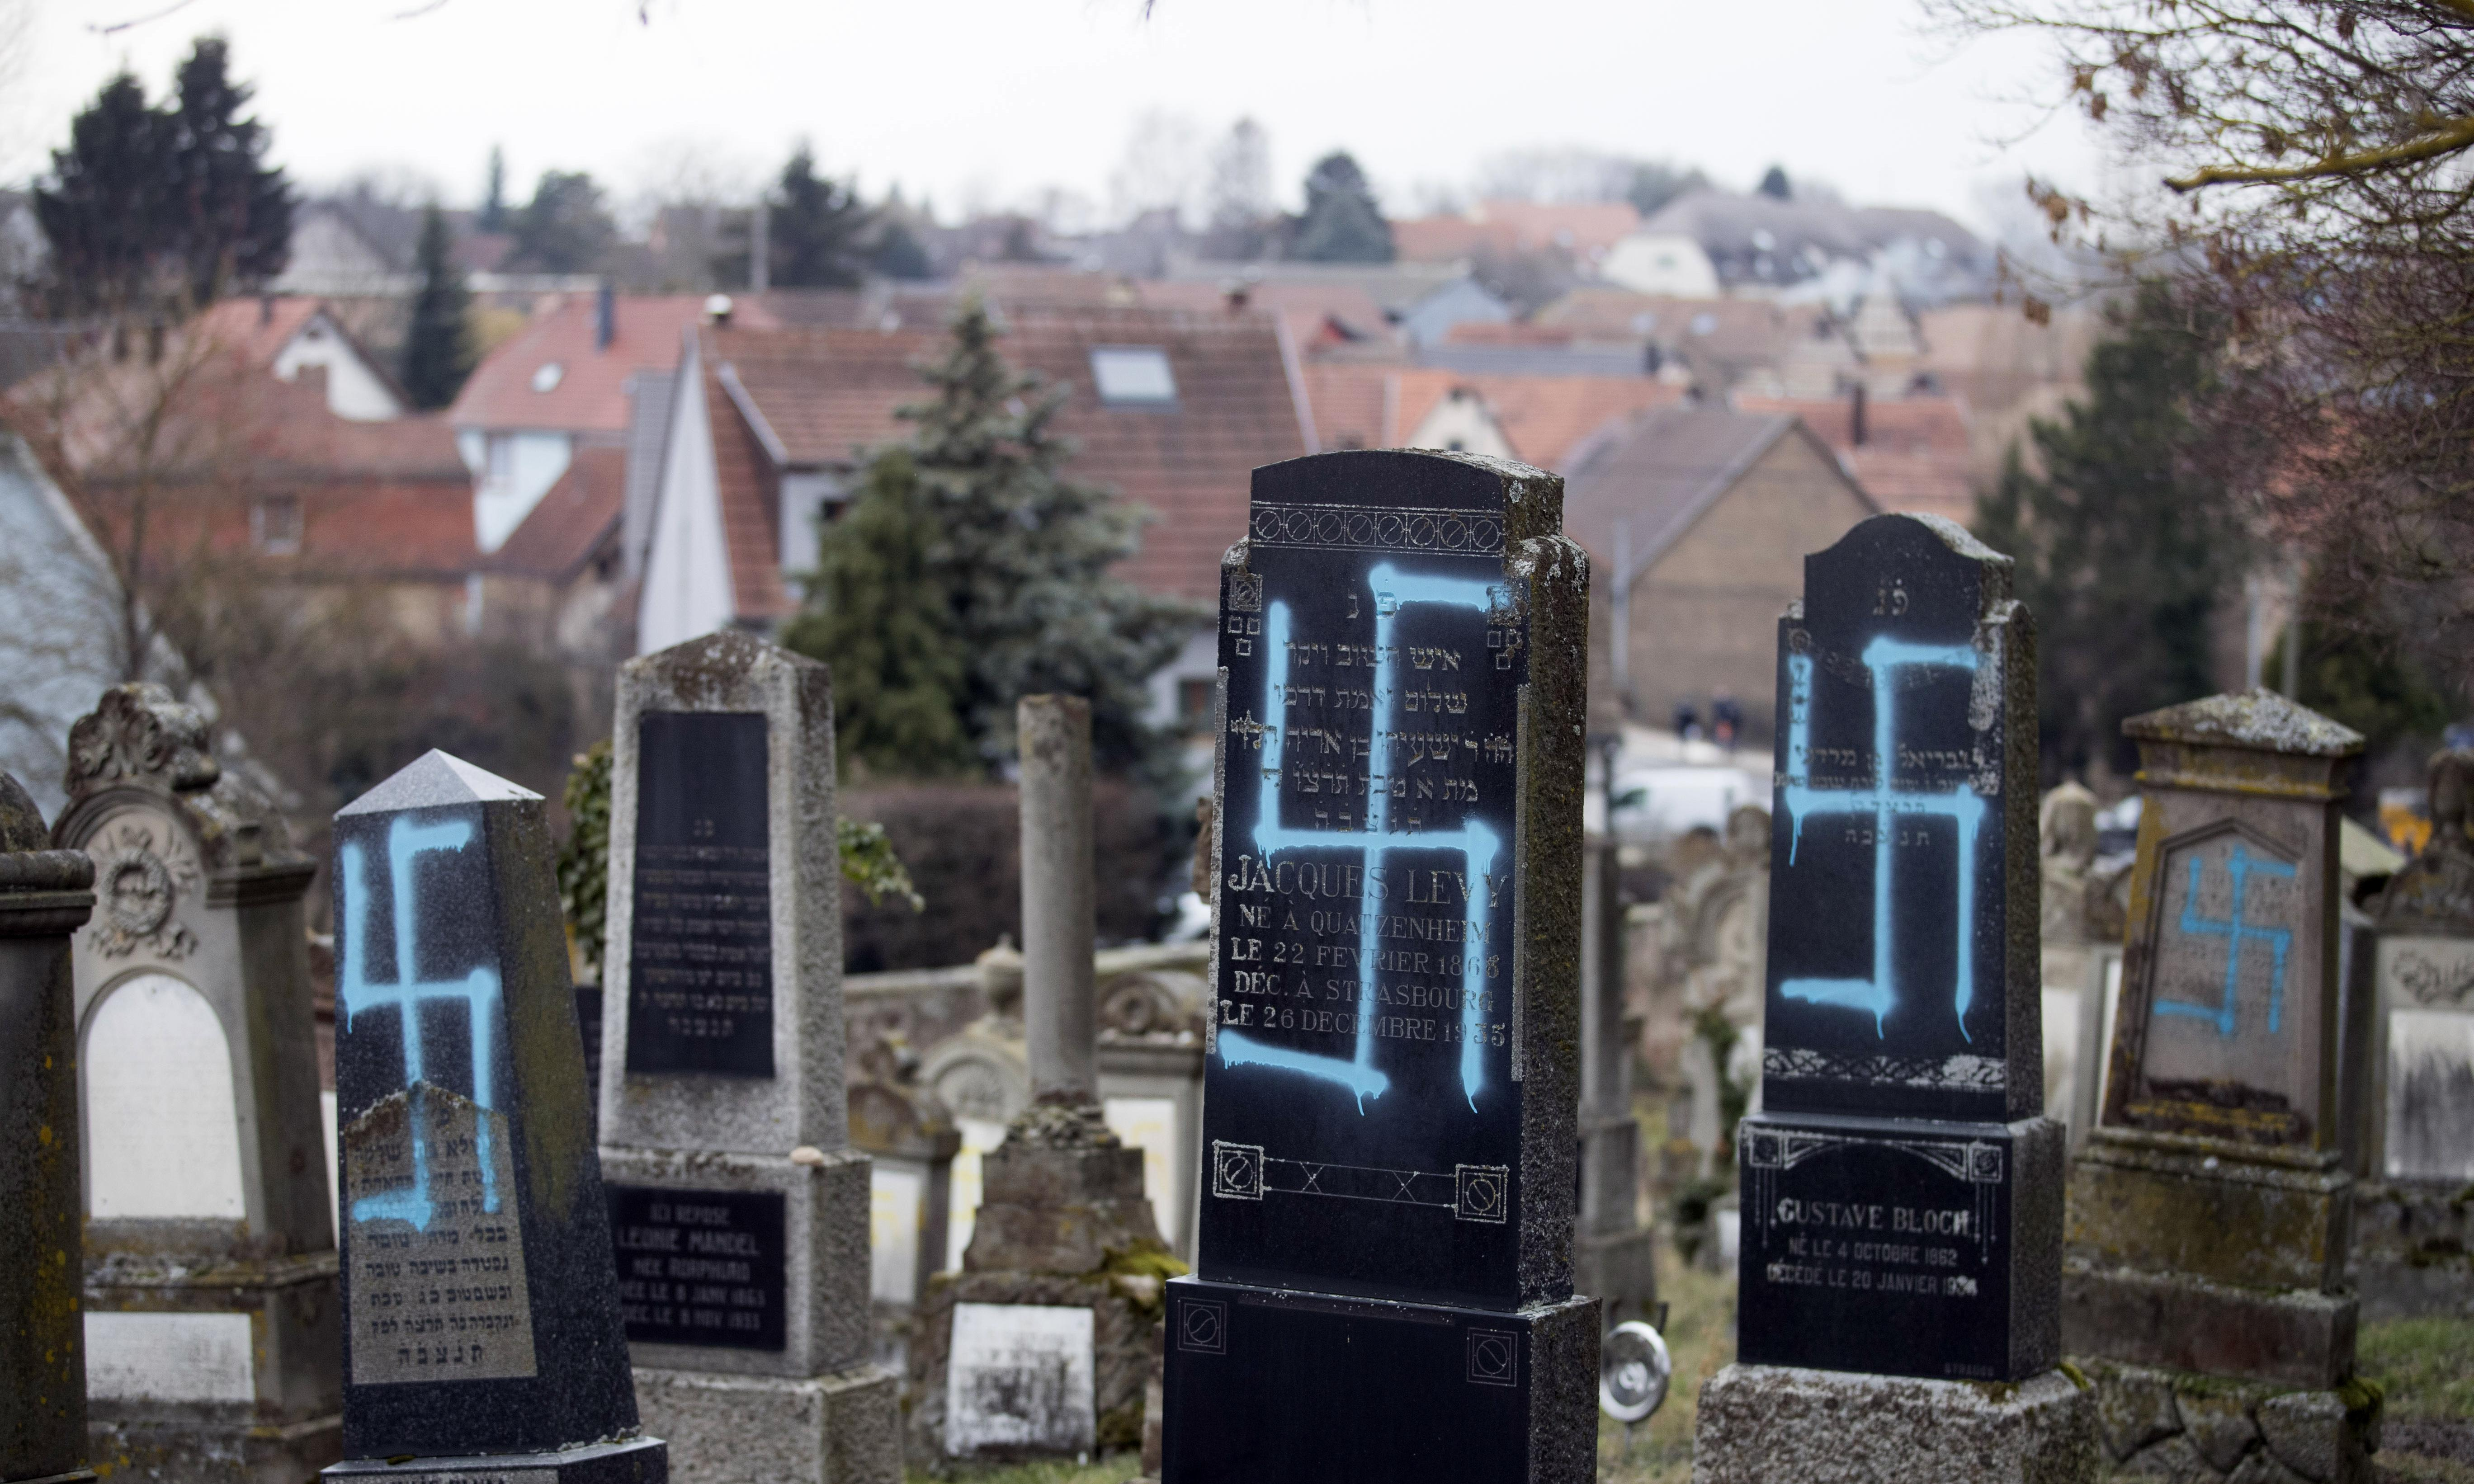 More tombs desecrated in France before antisemitism protests